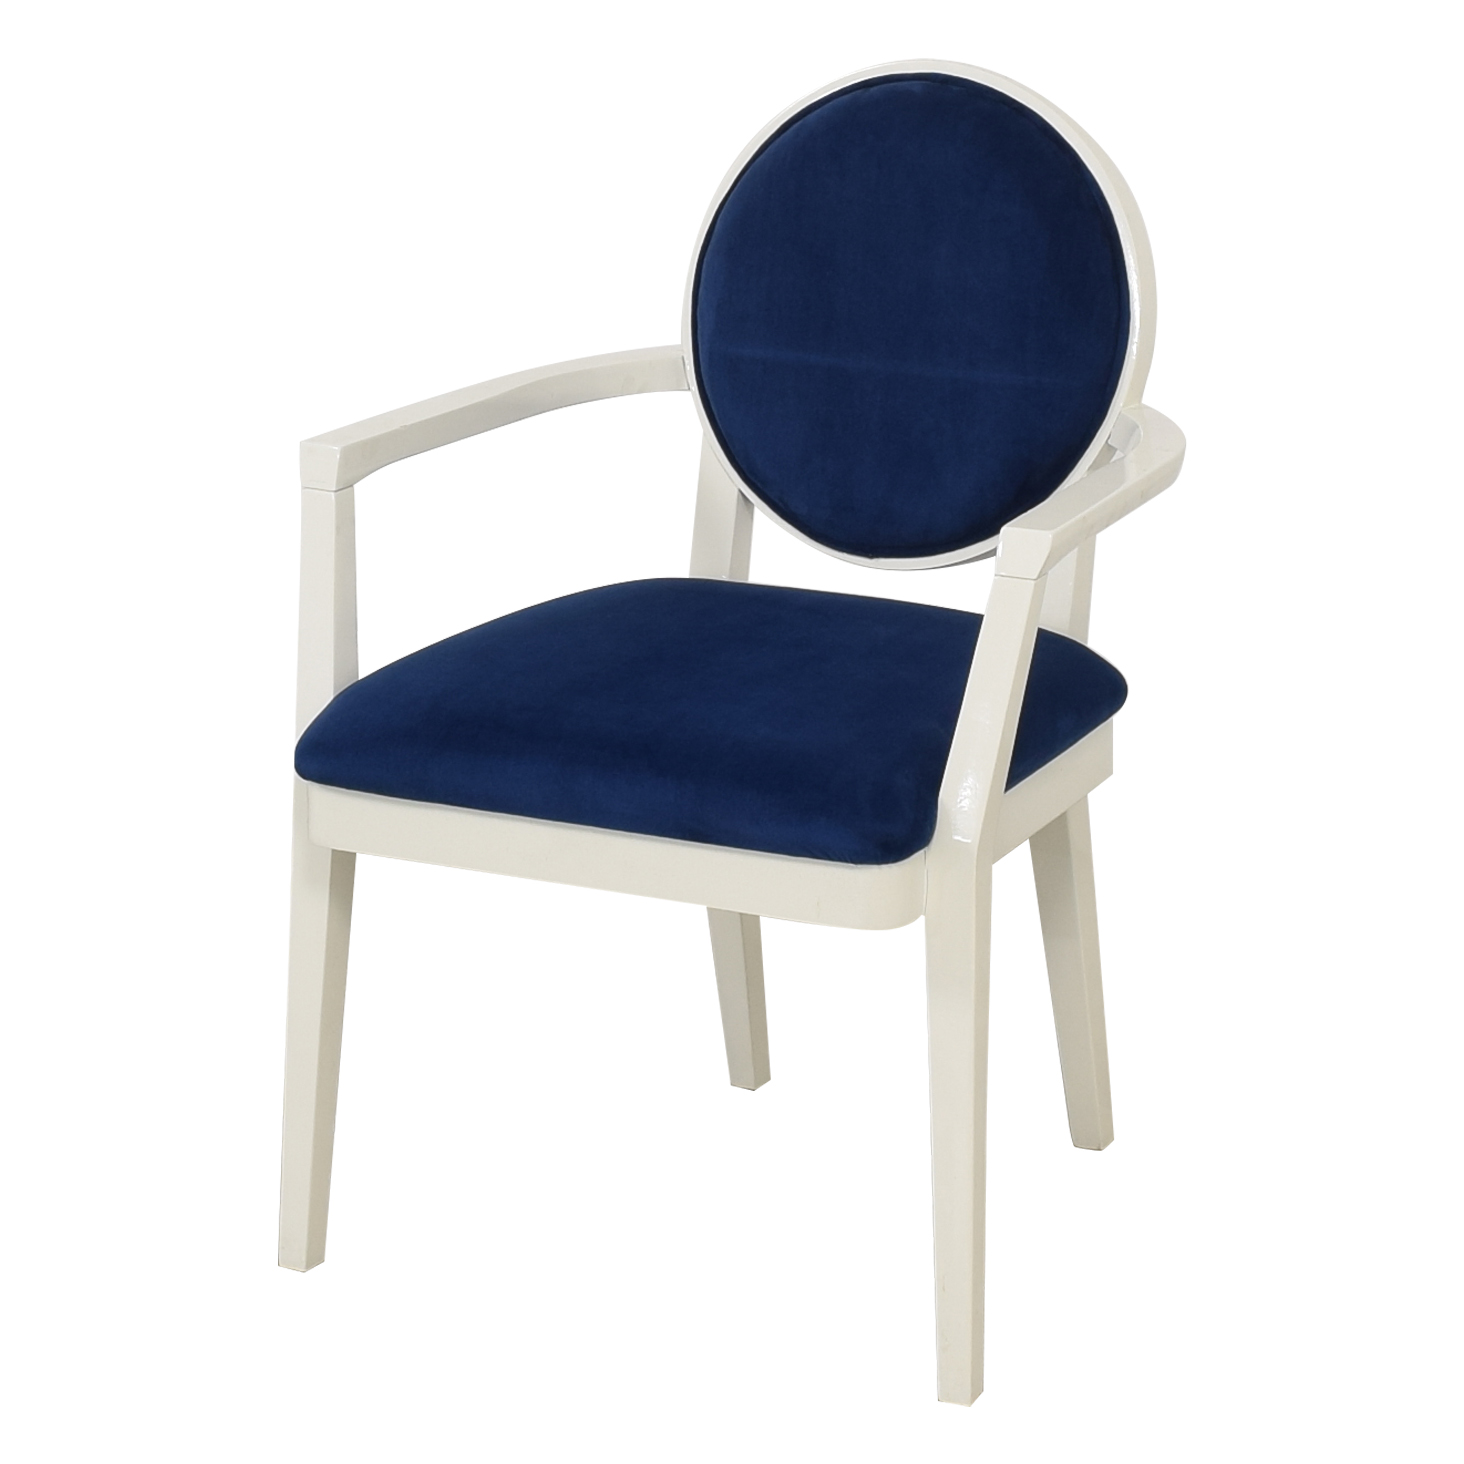 Jonathan Adler Happy Chic Dining Chairs / Dining Chairs